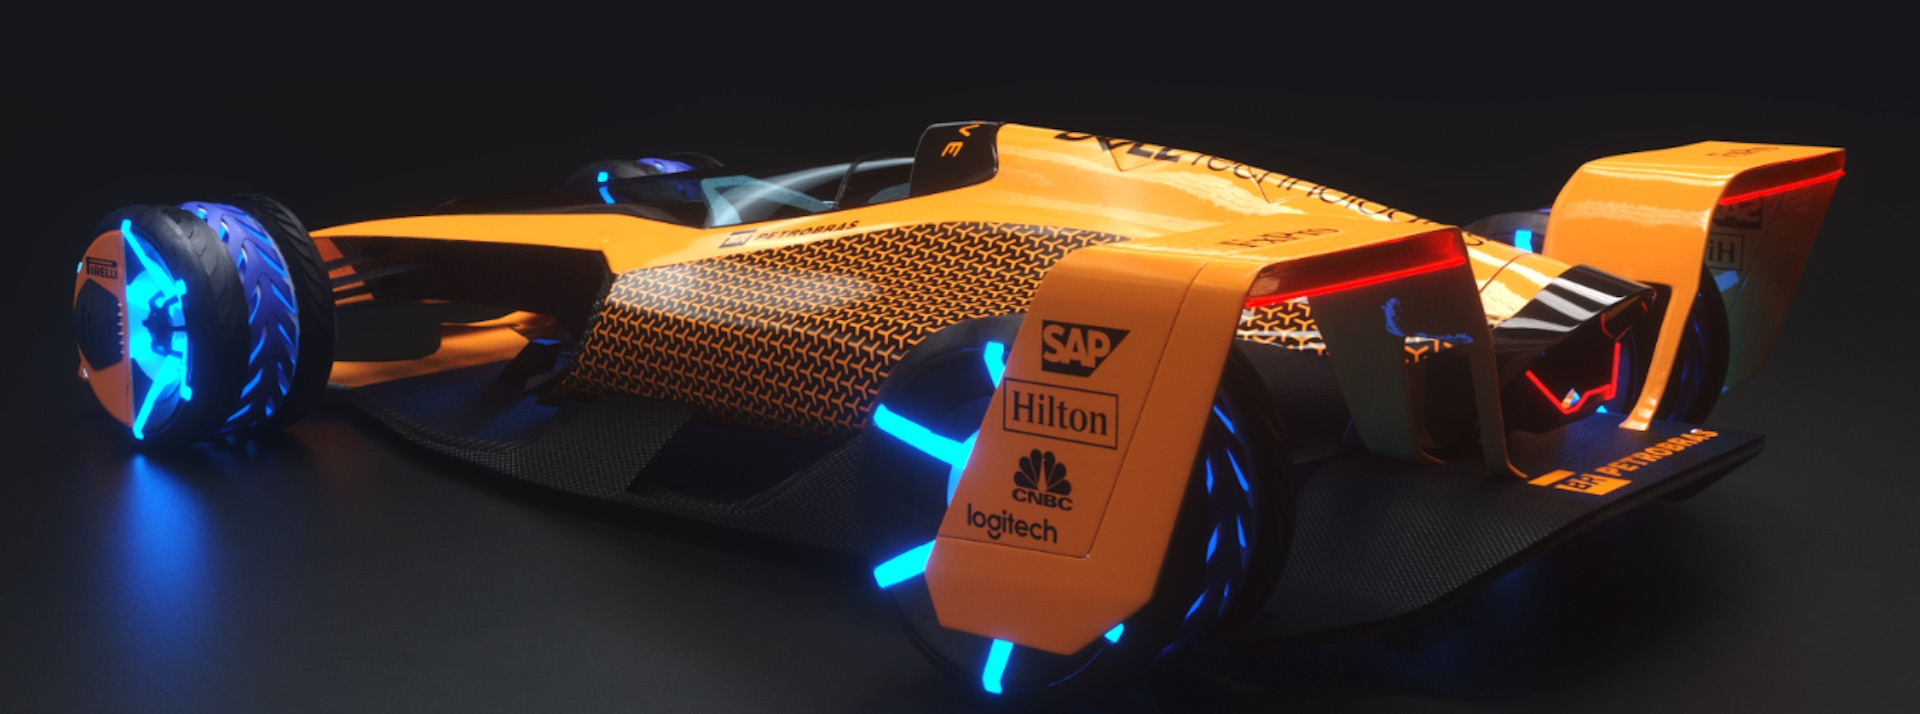 McLaren 2050 F1 race car: 300-mph EV that can shape-shift